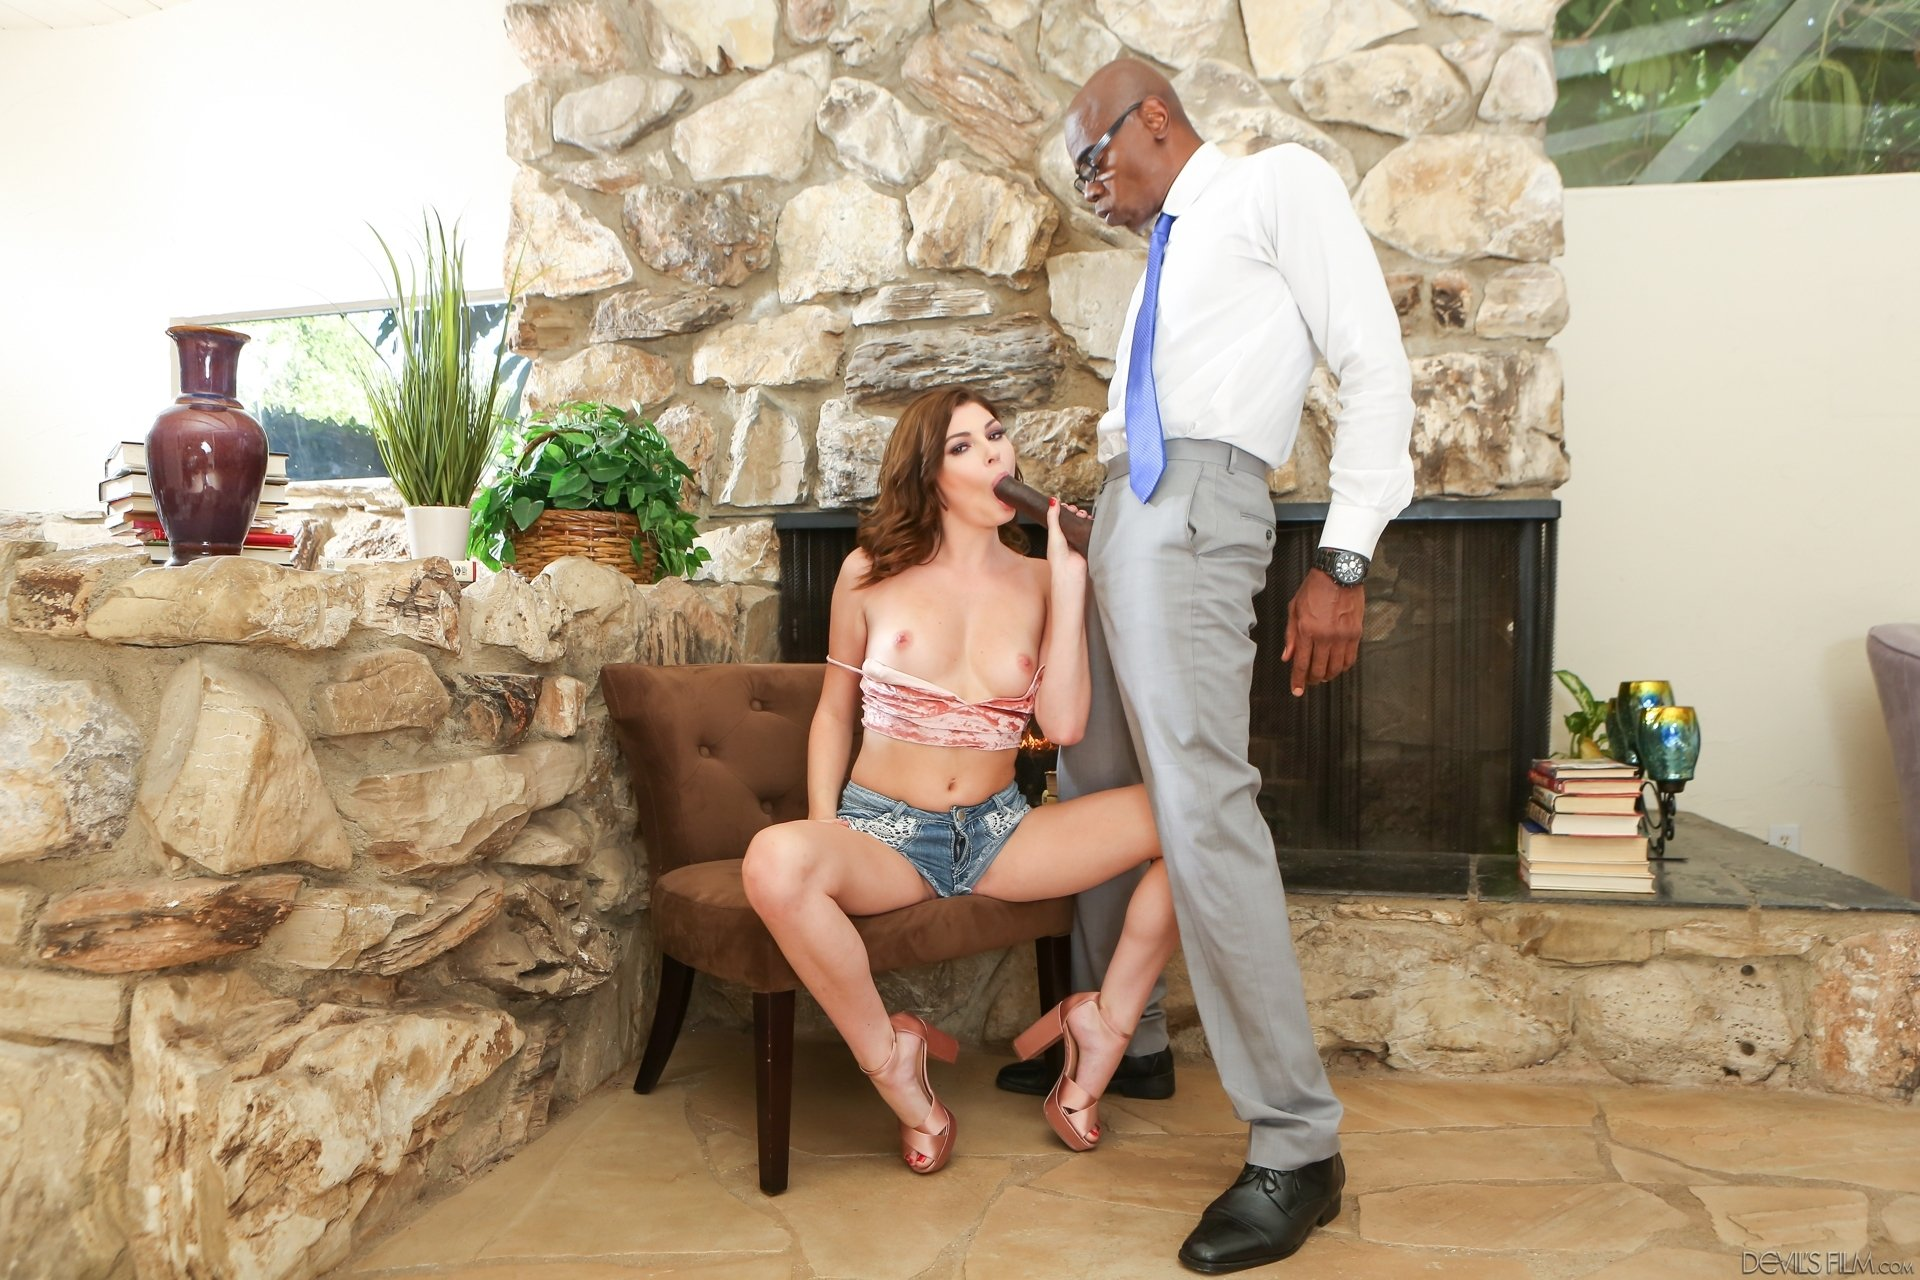 cuckold interracial vids authoritative answer